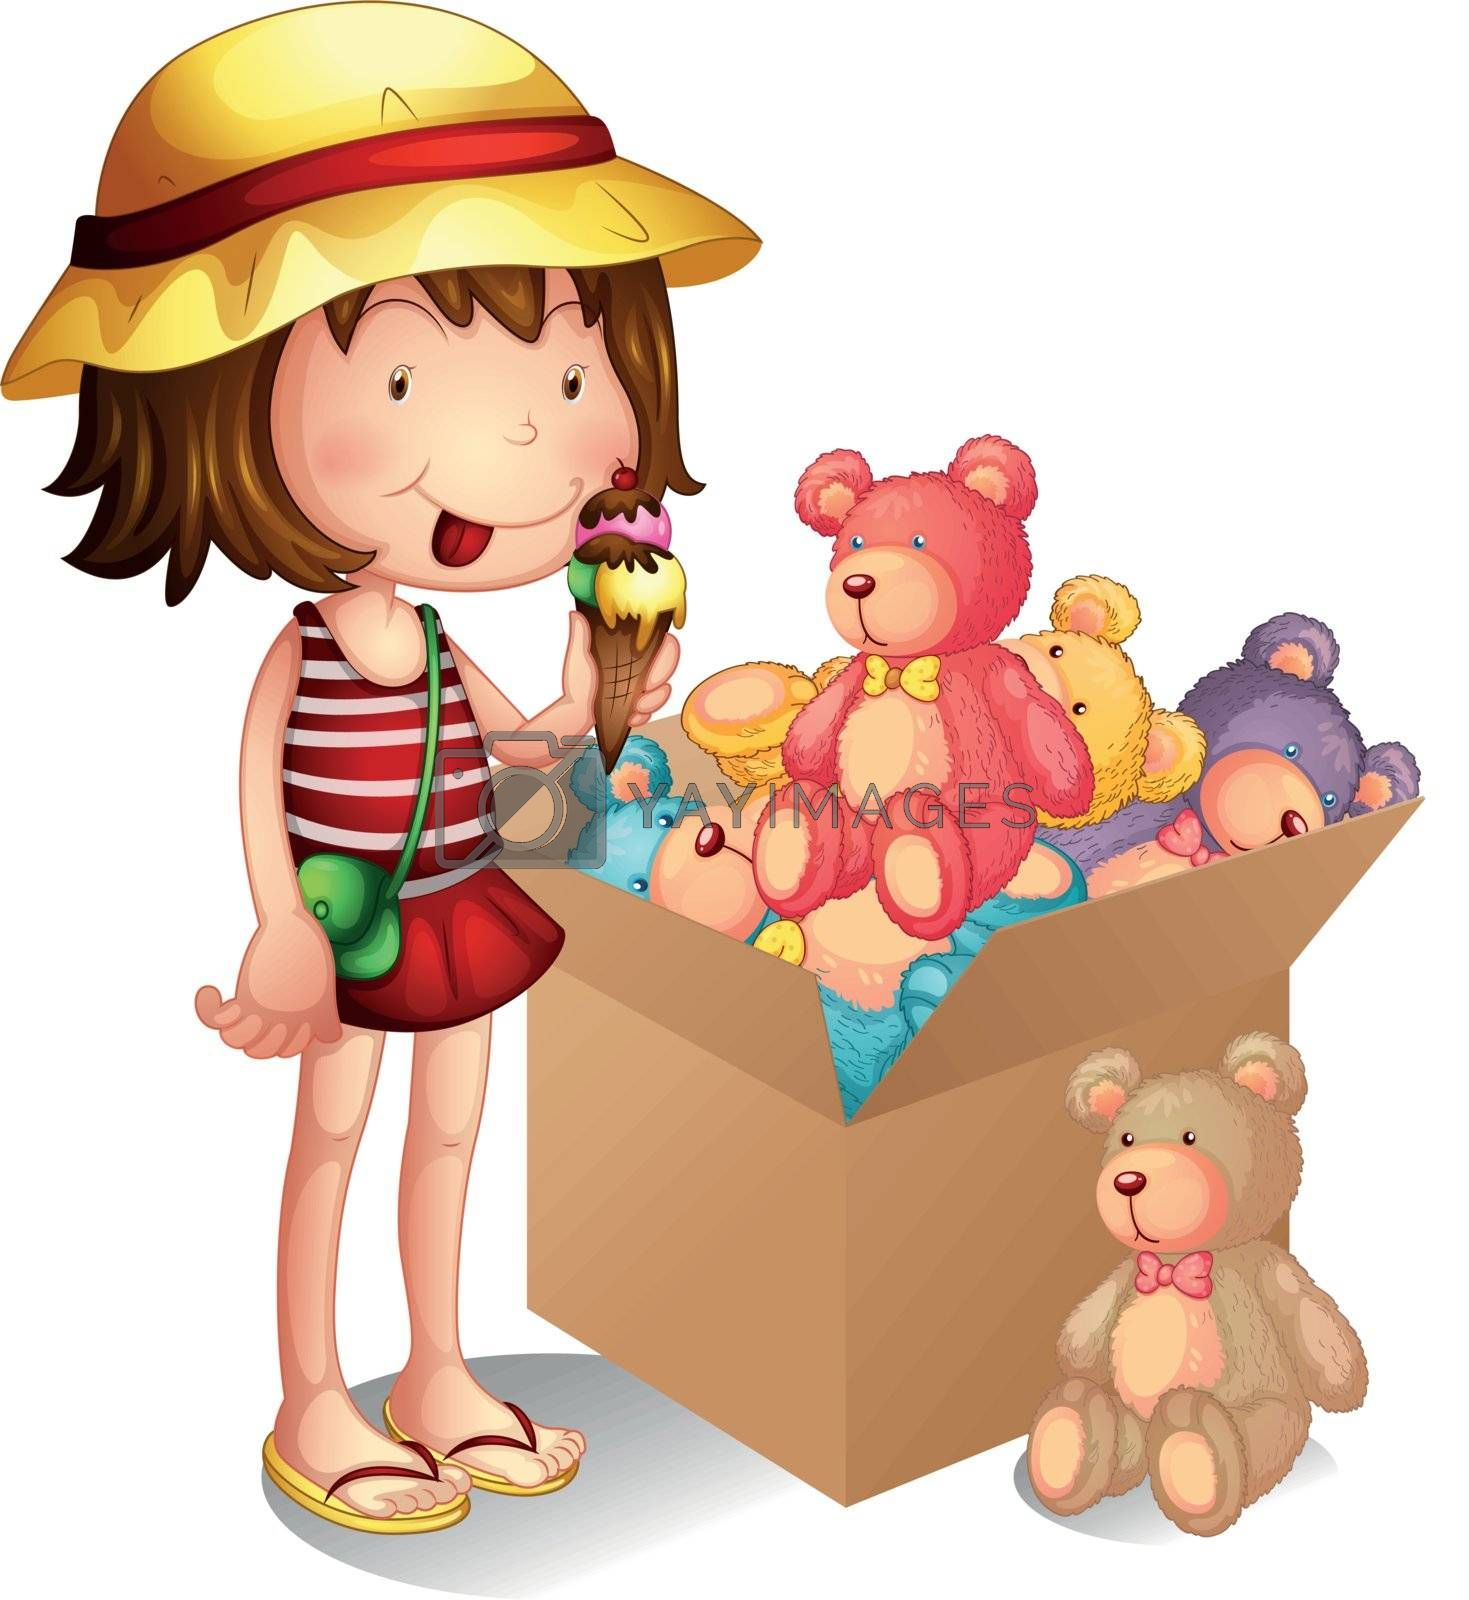 Illustration of a young girl beside a box of toys on a white background